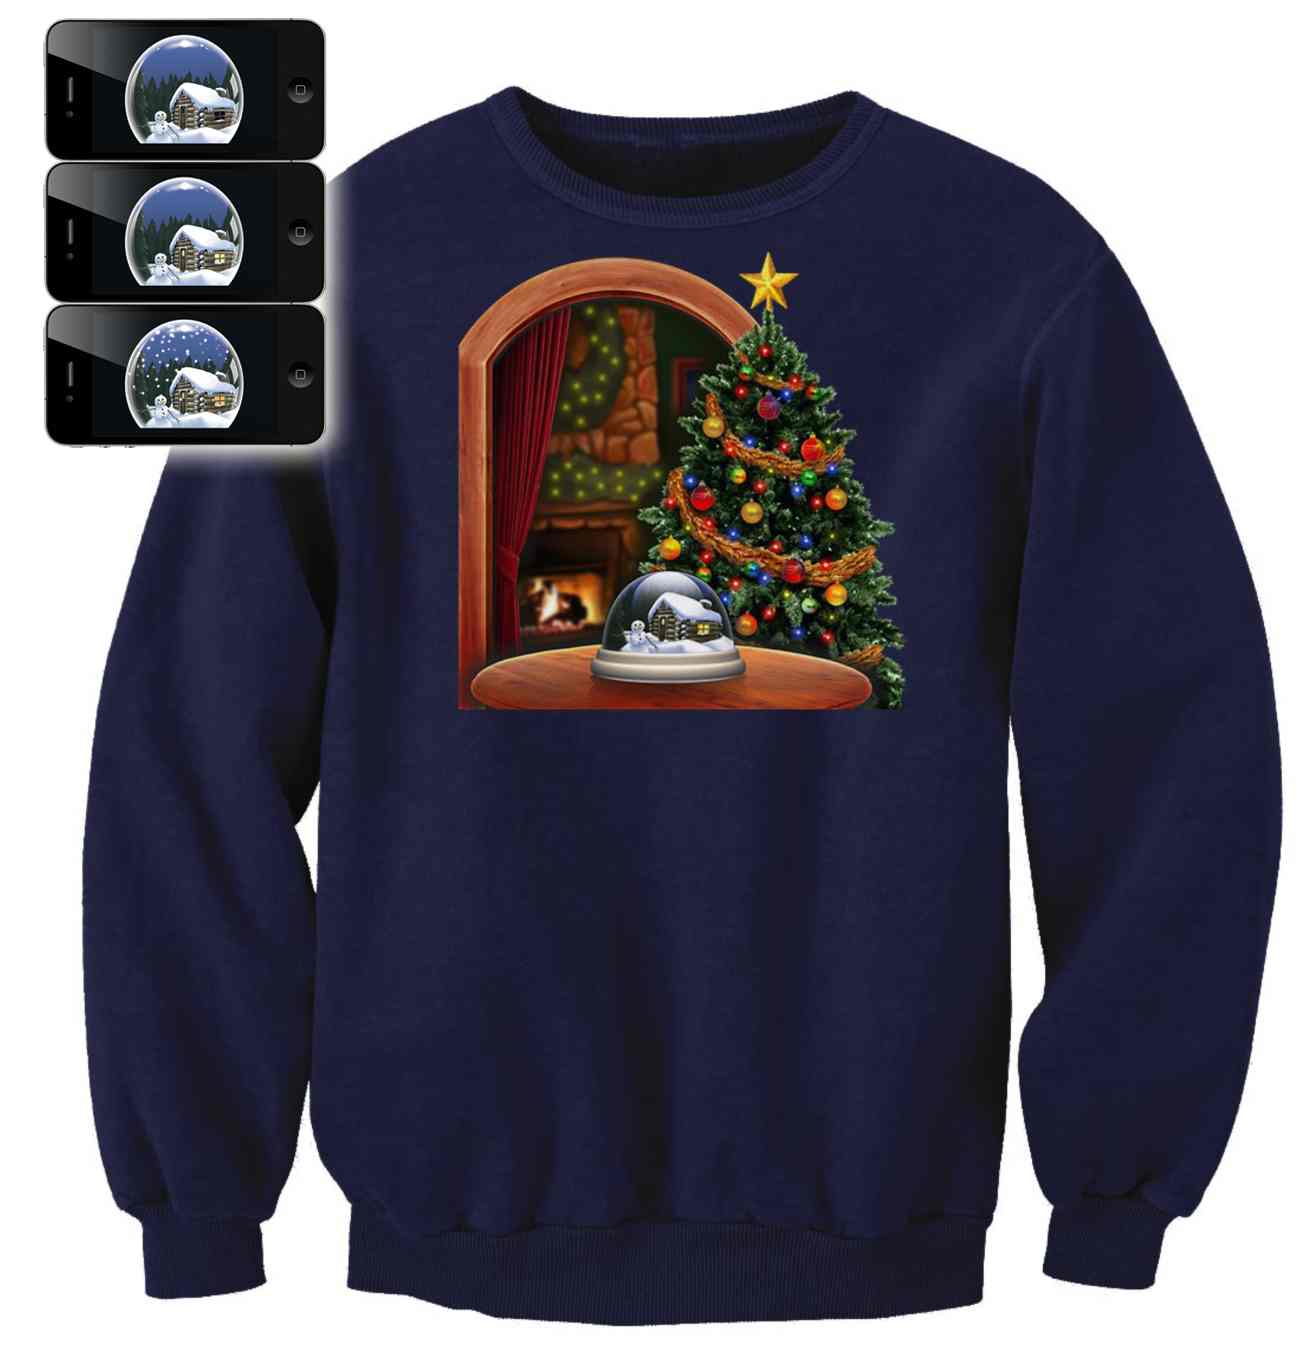 snowing snowglobe christmas sweater